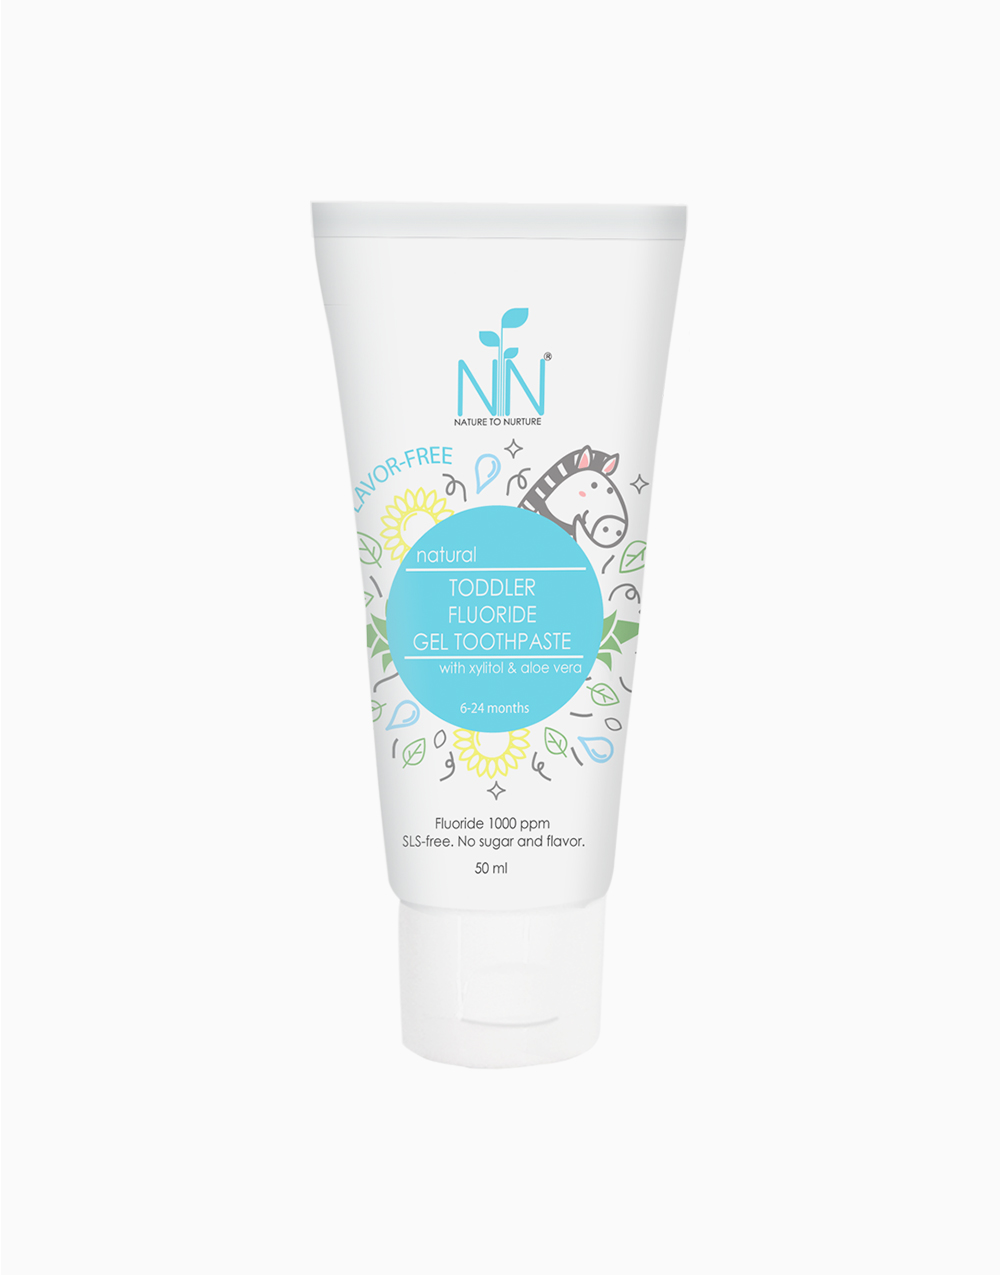 Toddler Fluoride Gel Toothpaste Blue (6 Months to 2 Years Old) by Nature to Nurture